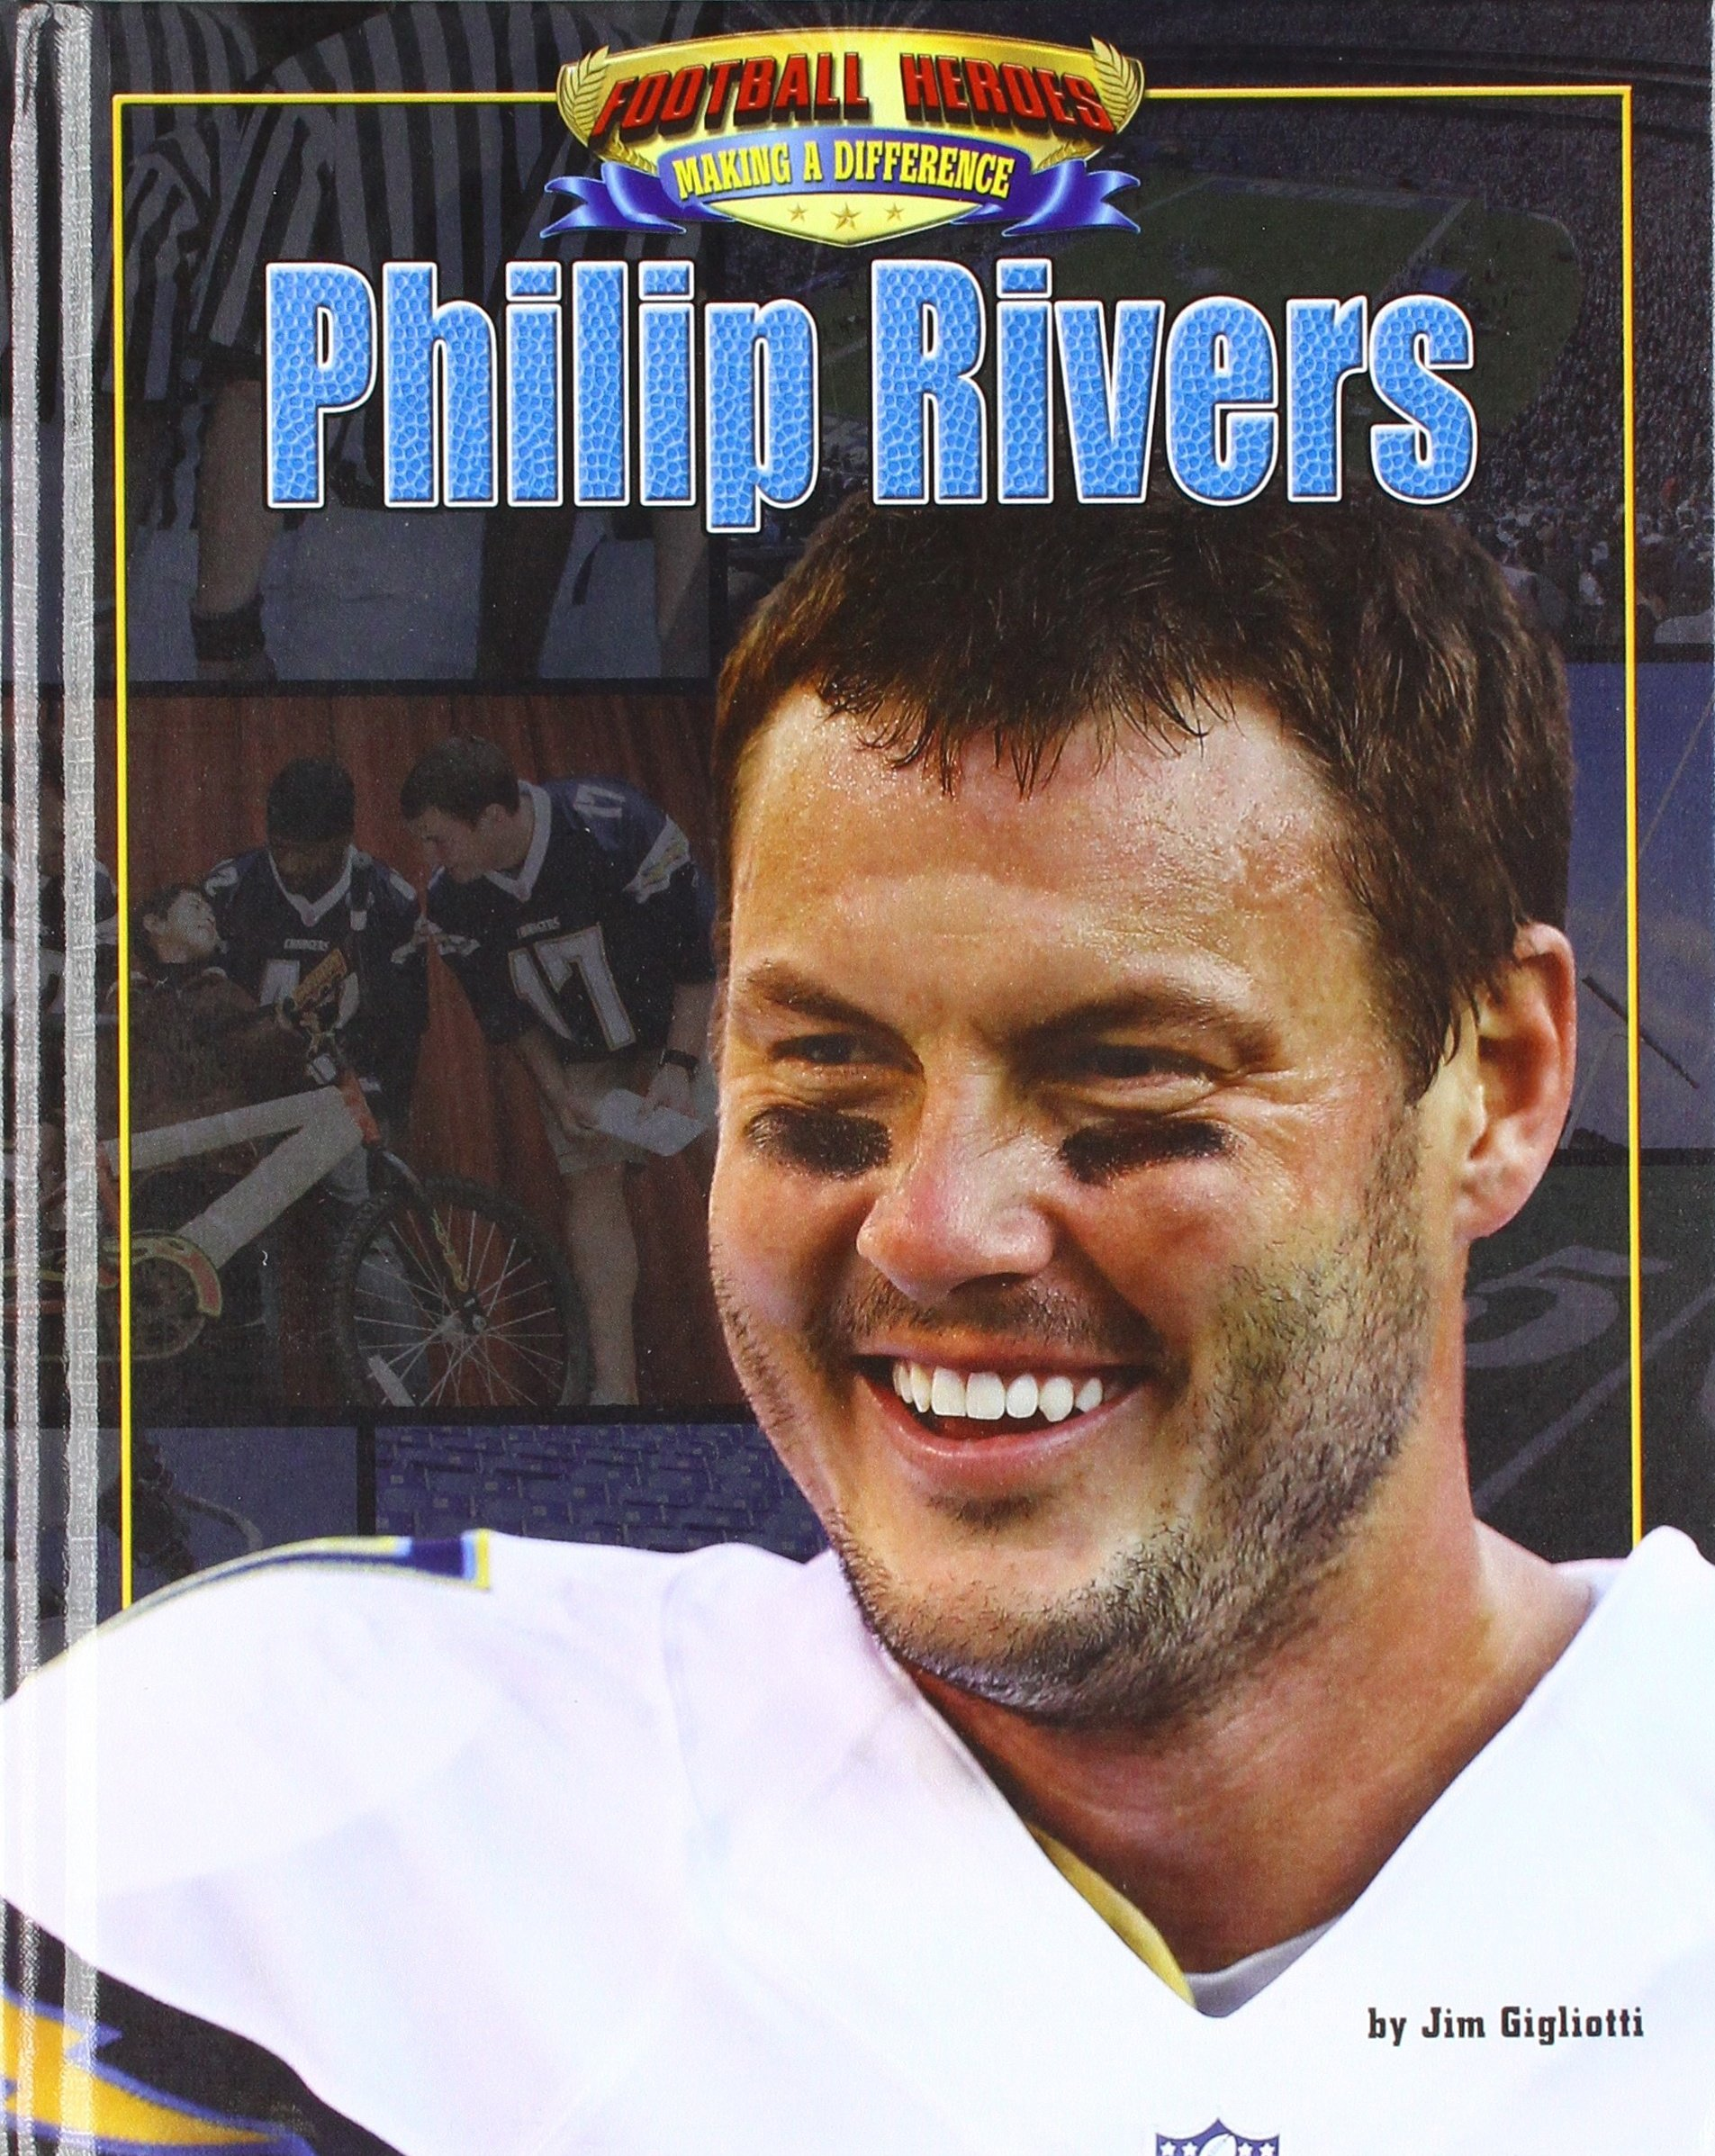 Philip Rivers (Football Heroes Making a Difference)